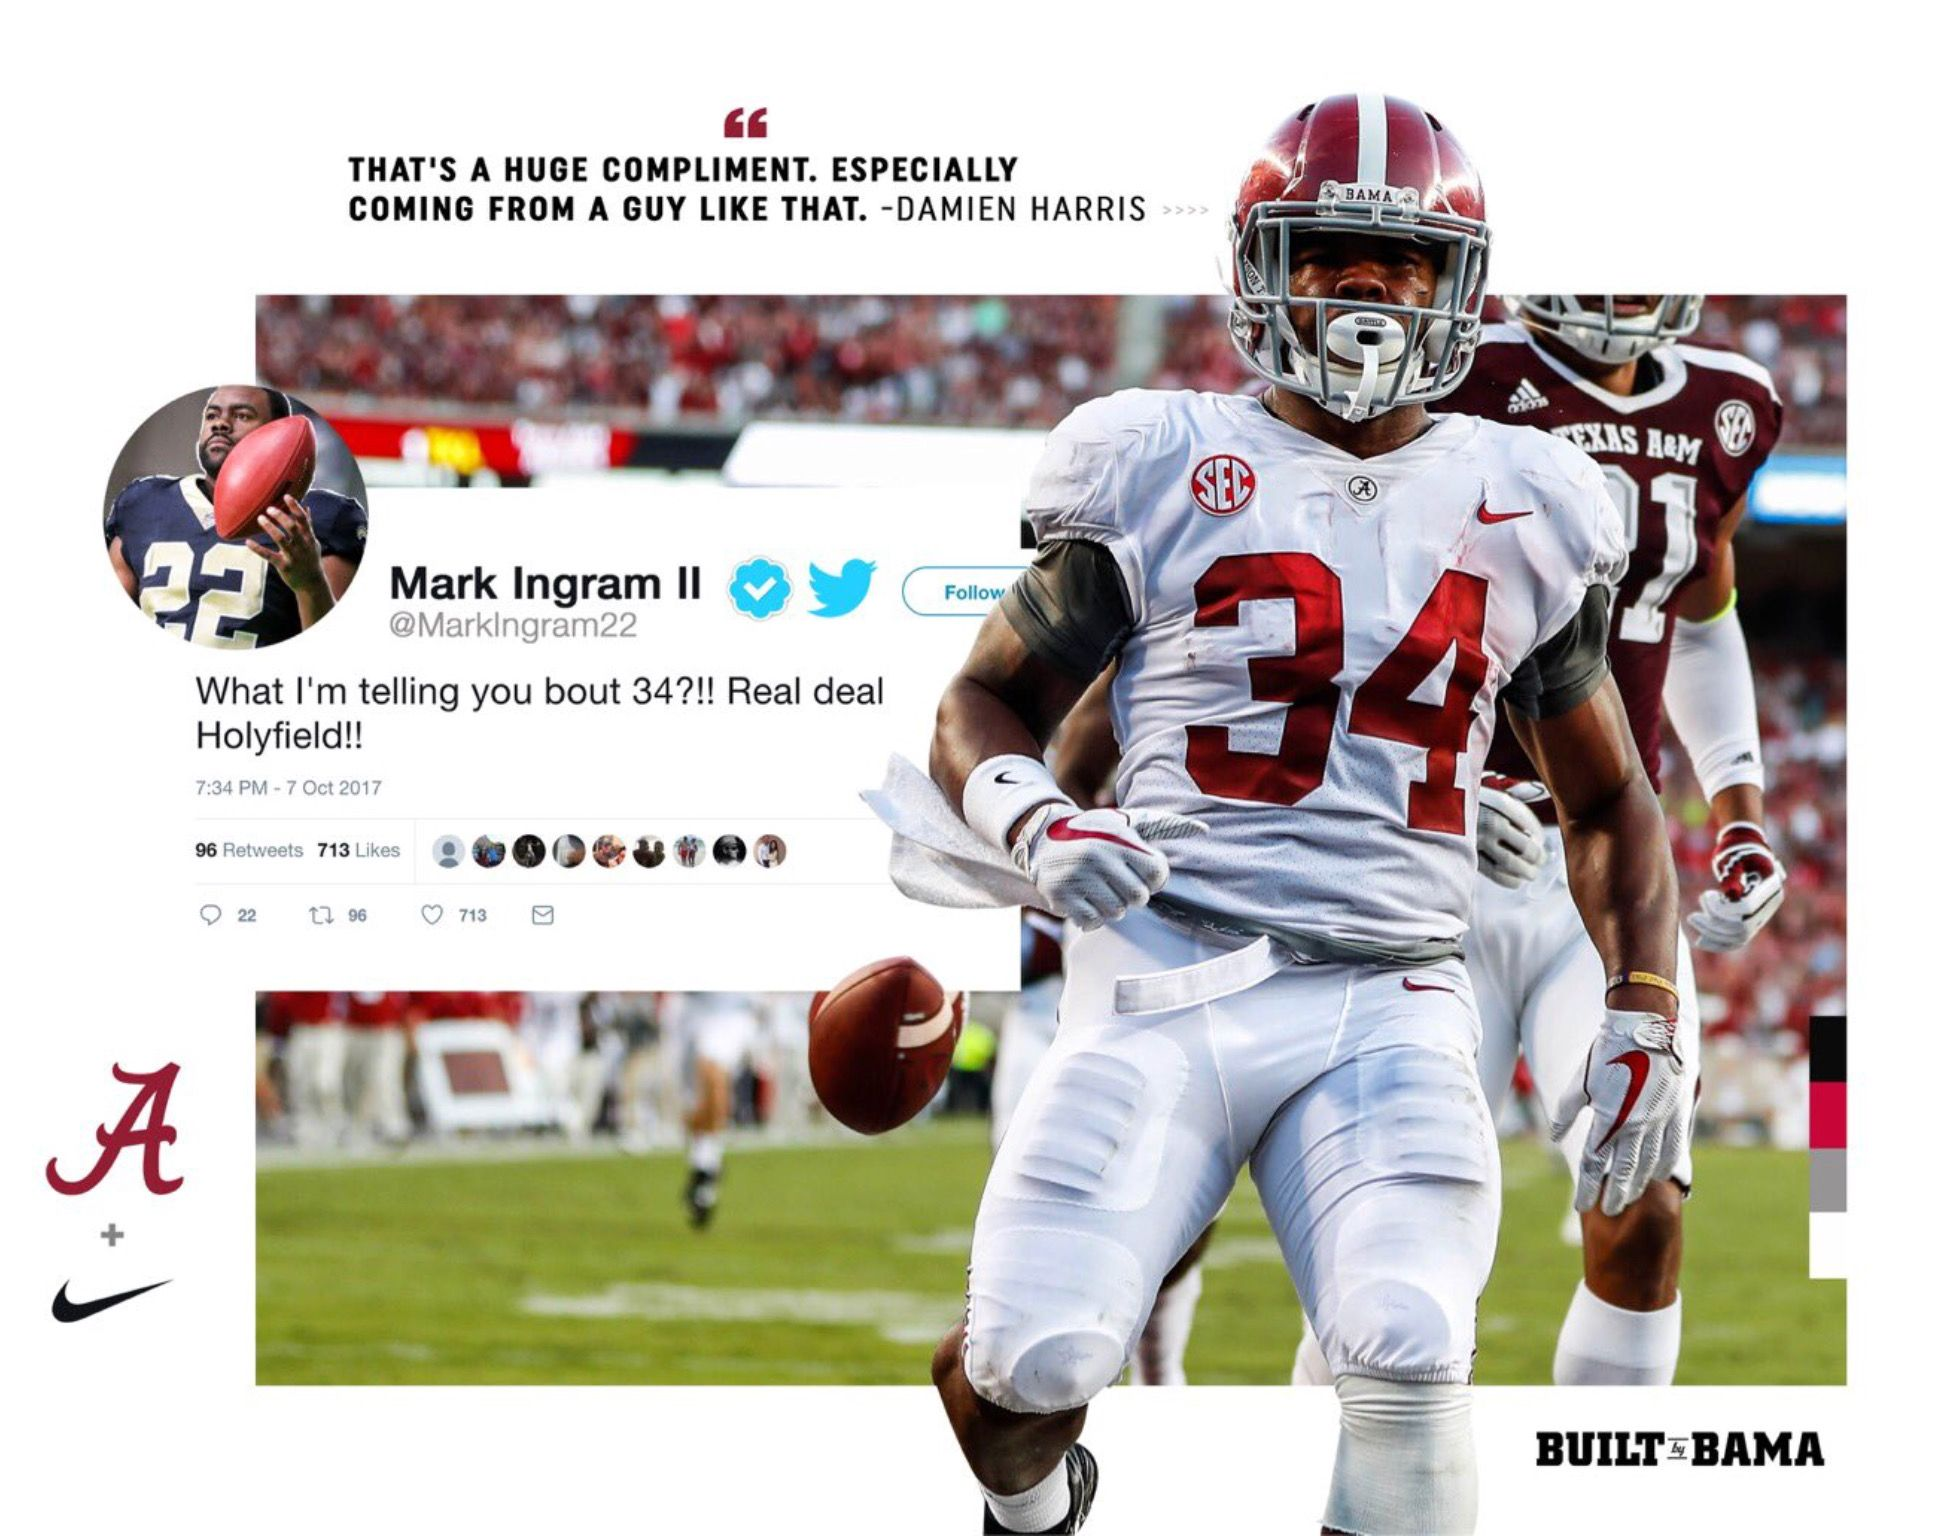 Damien Harris Compliment From Mark Ingram Via Alabamaftbl On Twitter Alabama Rolltide Bama Builtbybama Alabama Football Bama Football Alabama Crimson Tide